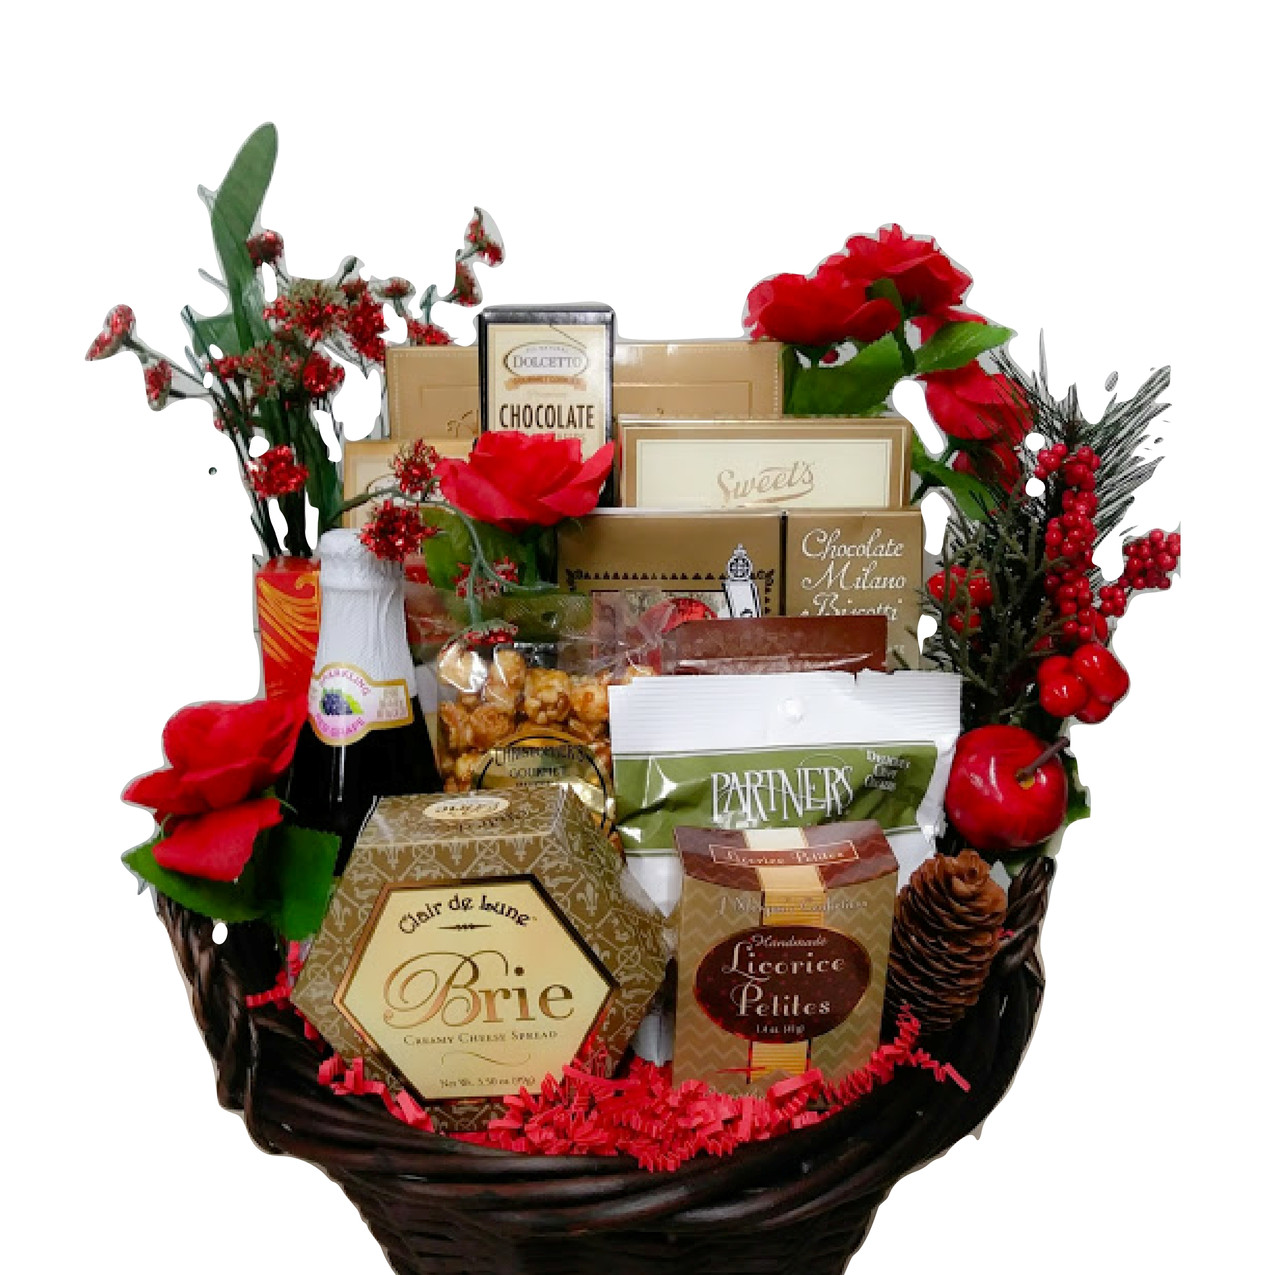 Holiday Delight Celebrate the season with these gourmet treats: sparkling cider, pretzels, garlic crackers, chocolate bits and bites, wafer rolls, almonds, mixed nuts, Brie cheese and more! ($45.00, shown)  ORDER NOW!